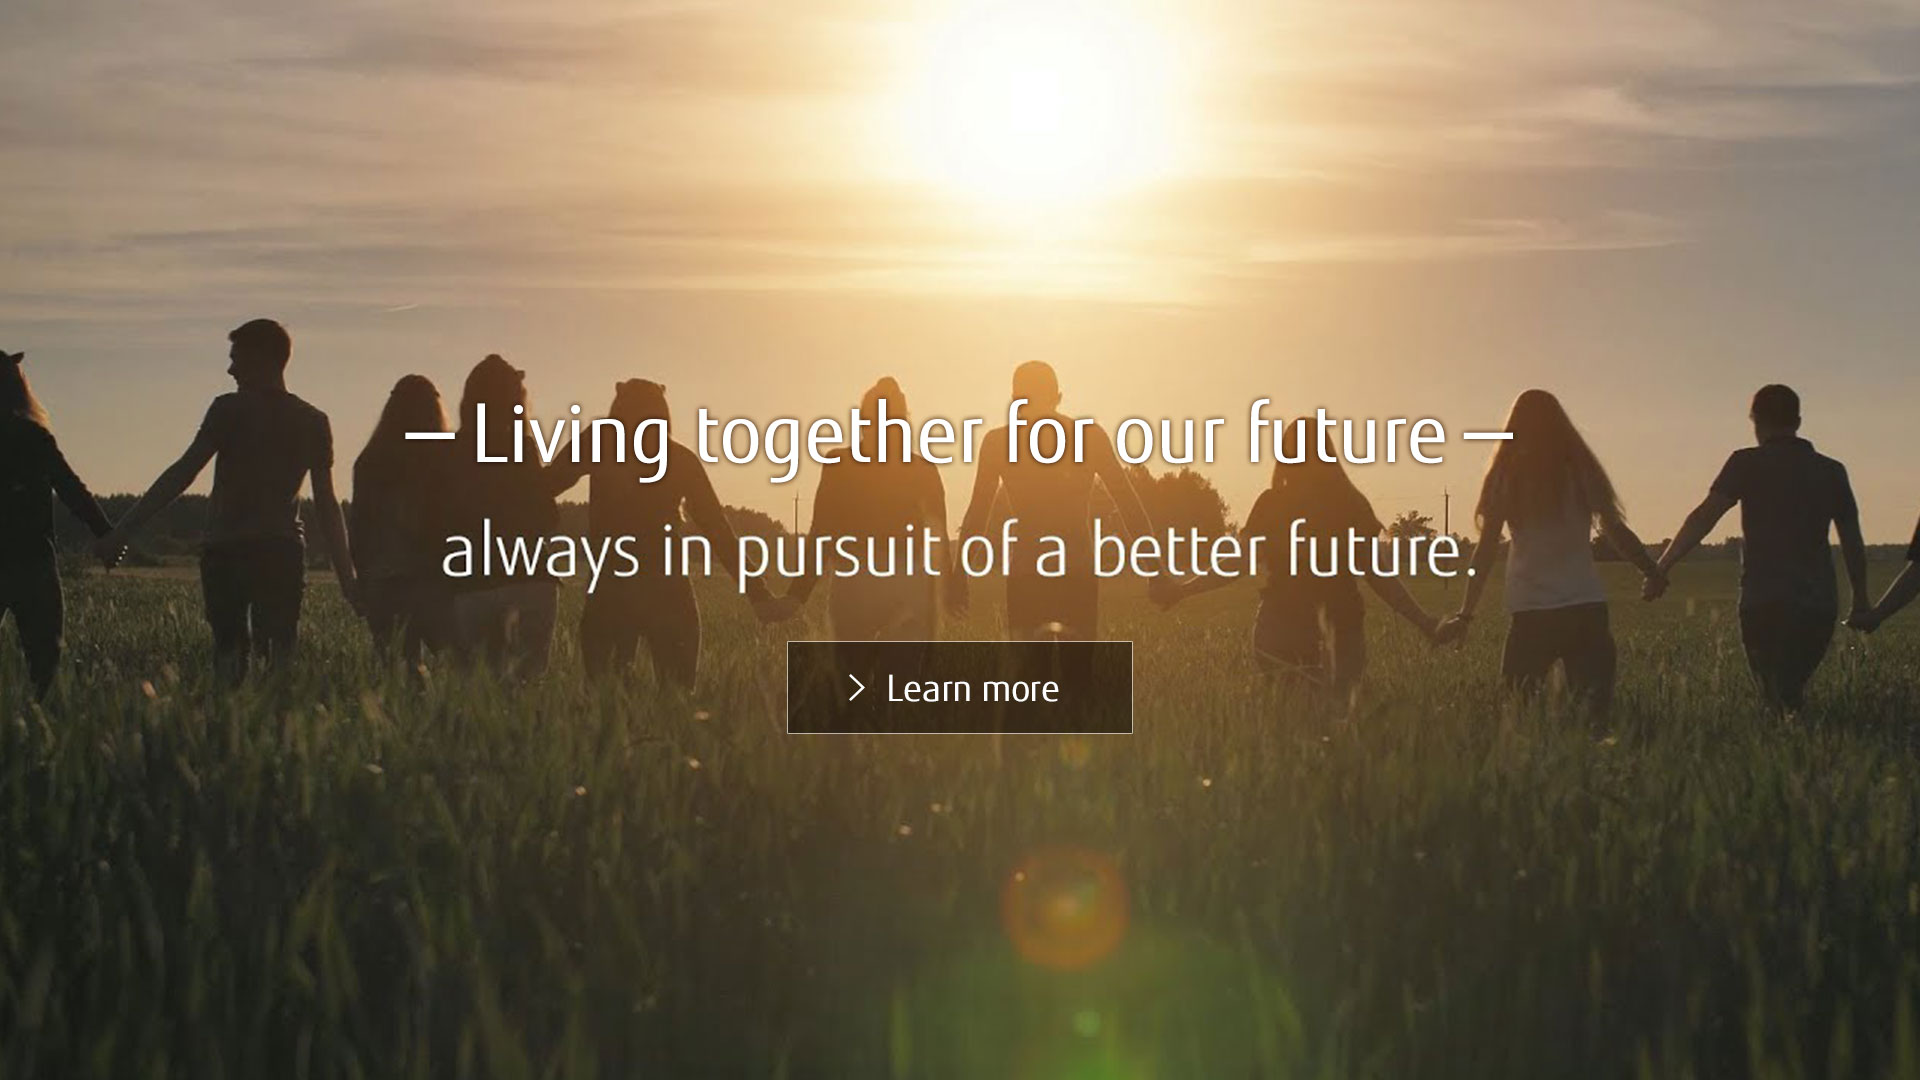 FUJITSU GENERAL Corporate Movie - Living together for our future